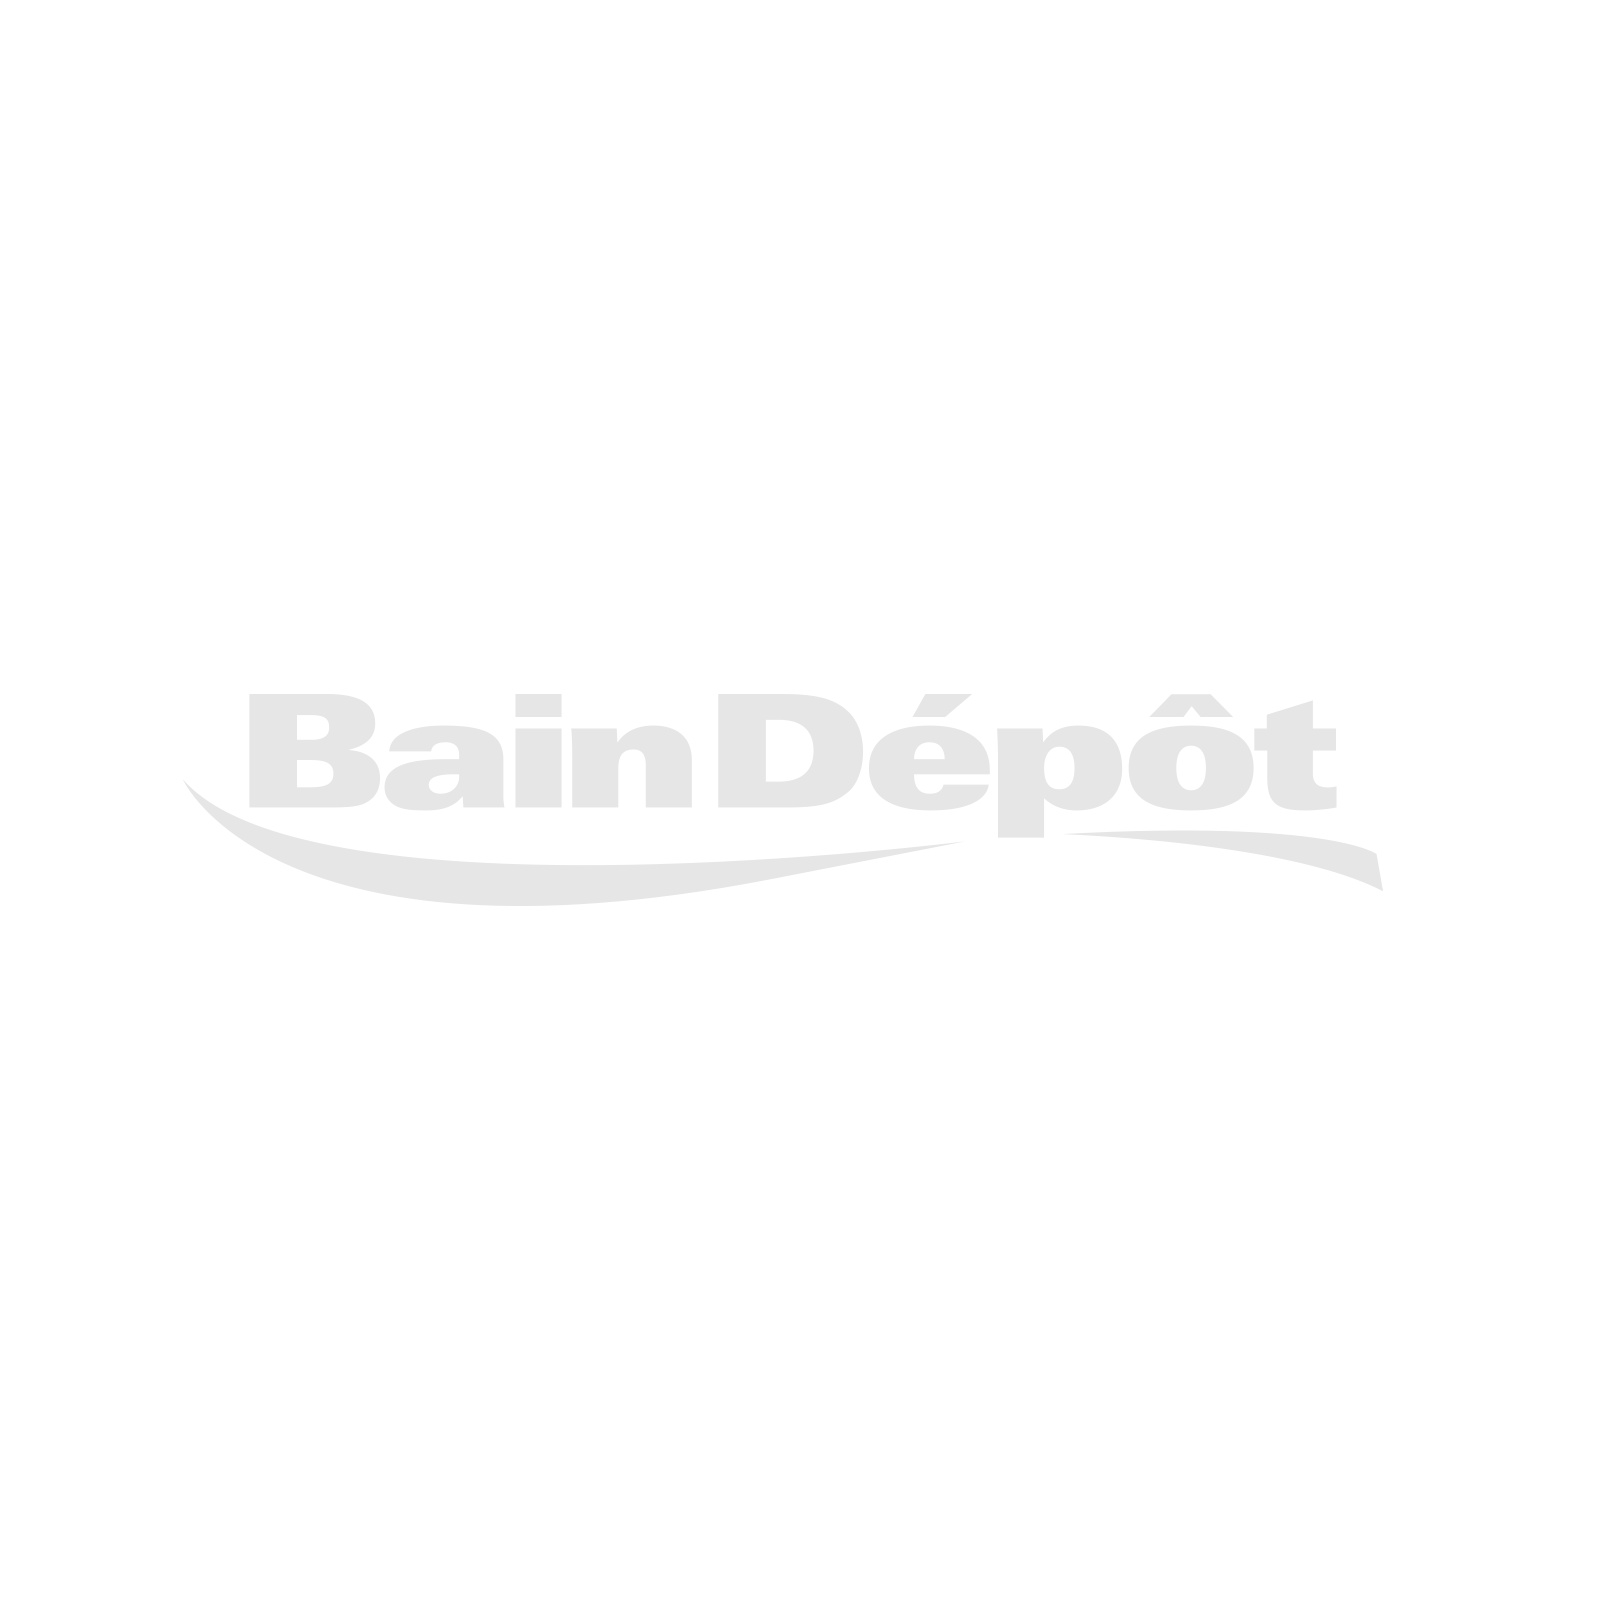 Tension rod kitchen organizer with utensil holder and hooks